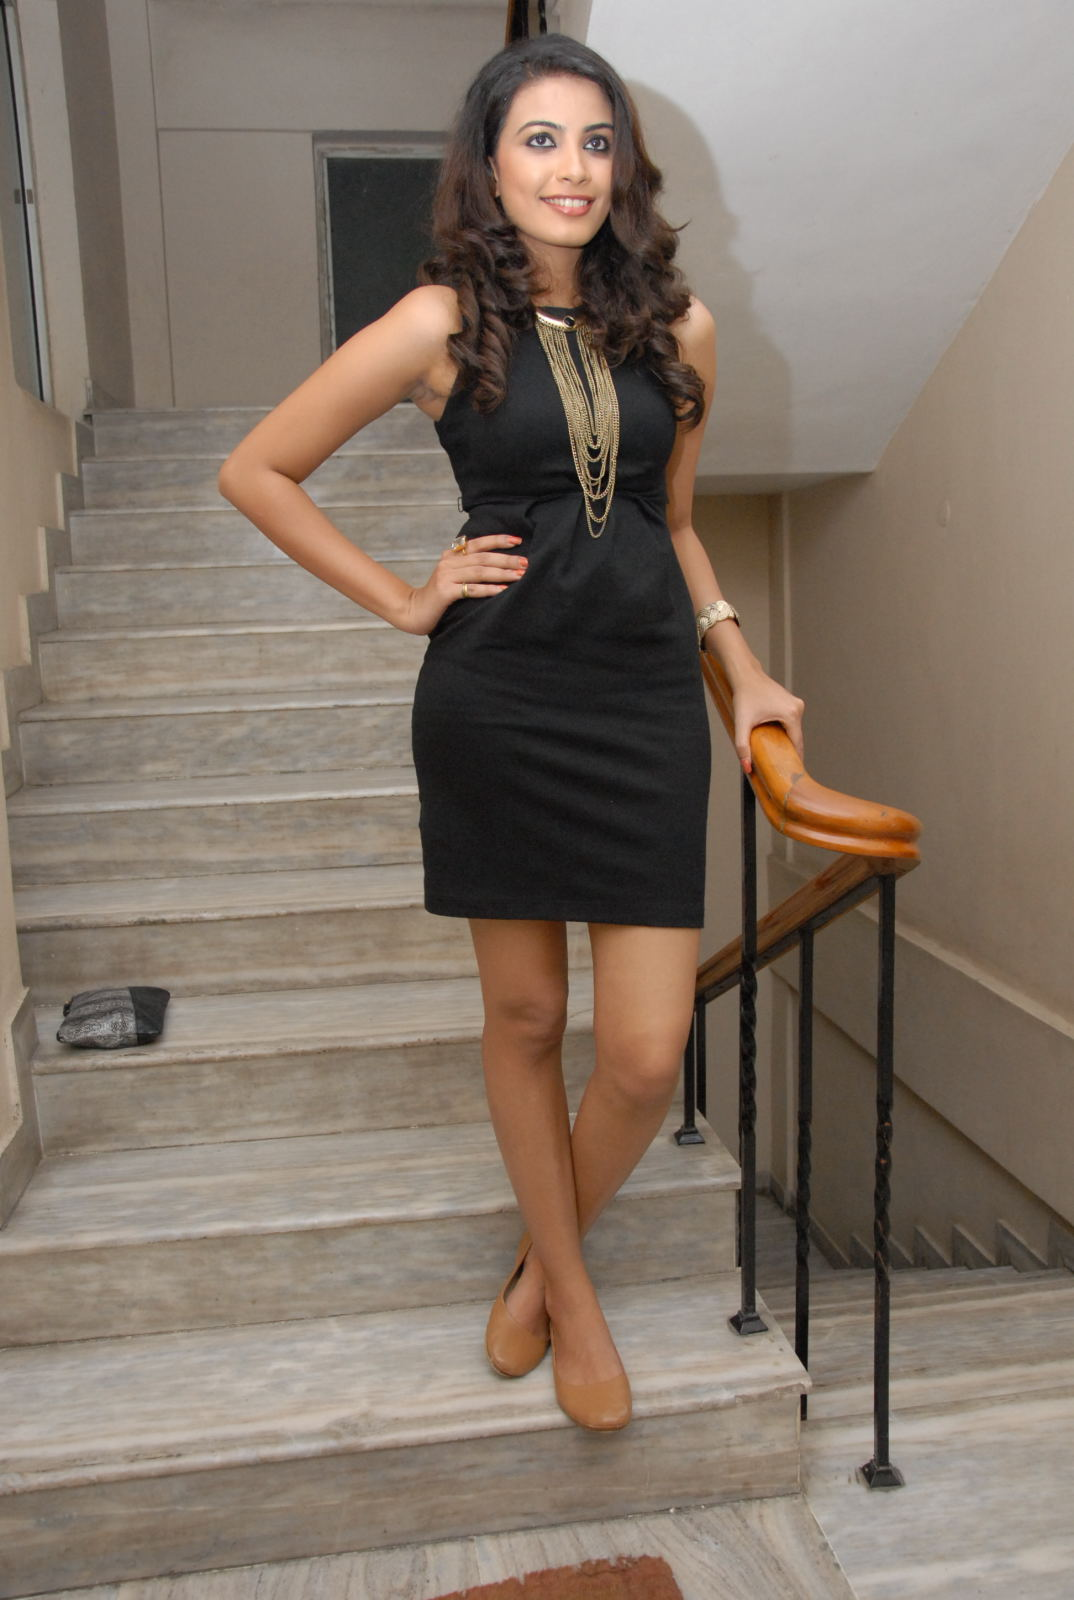 Kavya Shetty hot in black dress